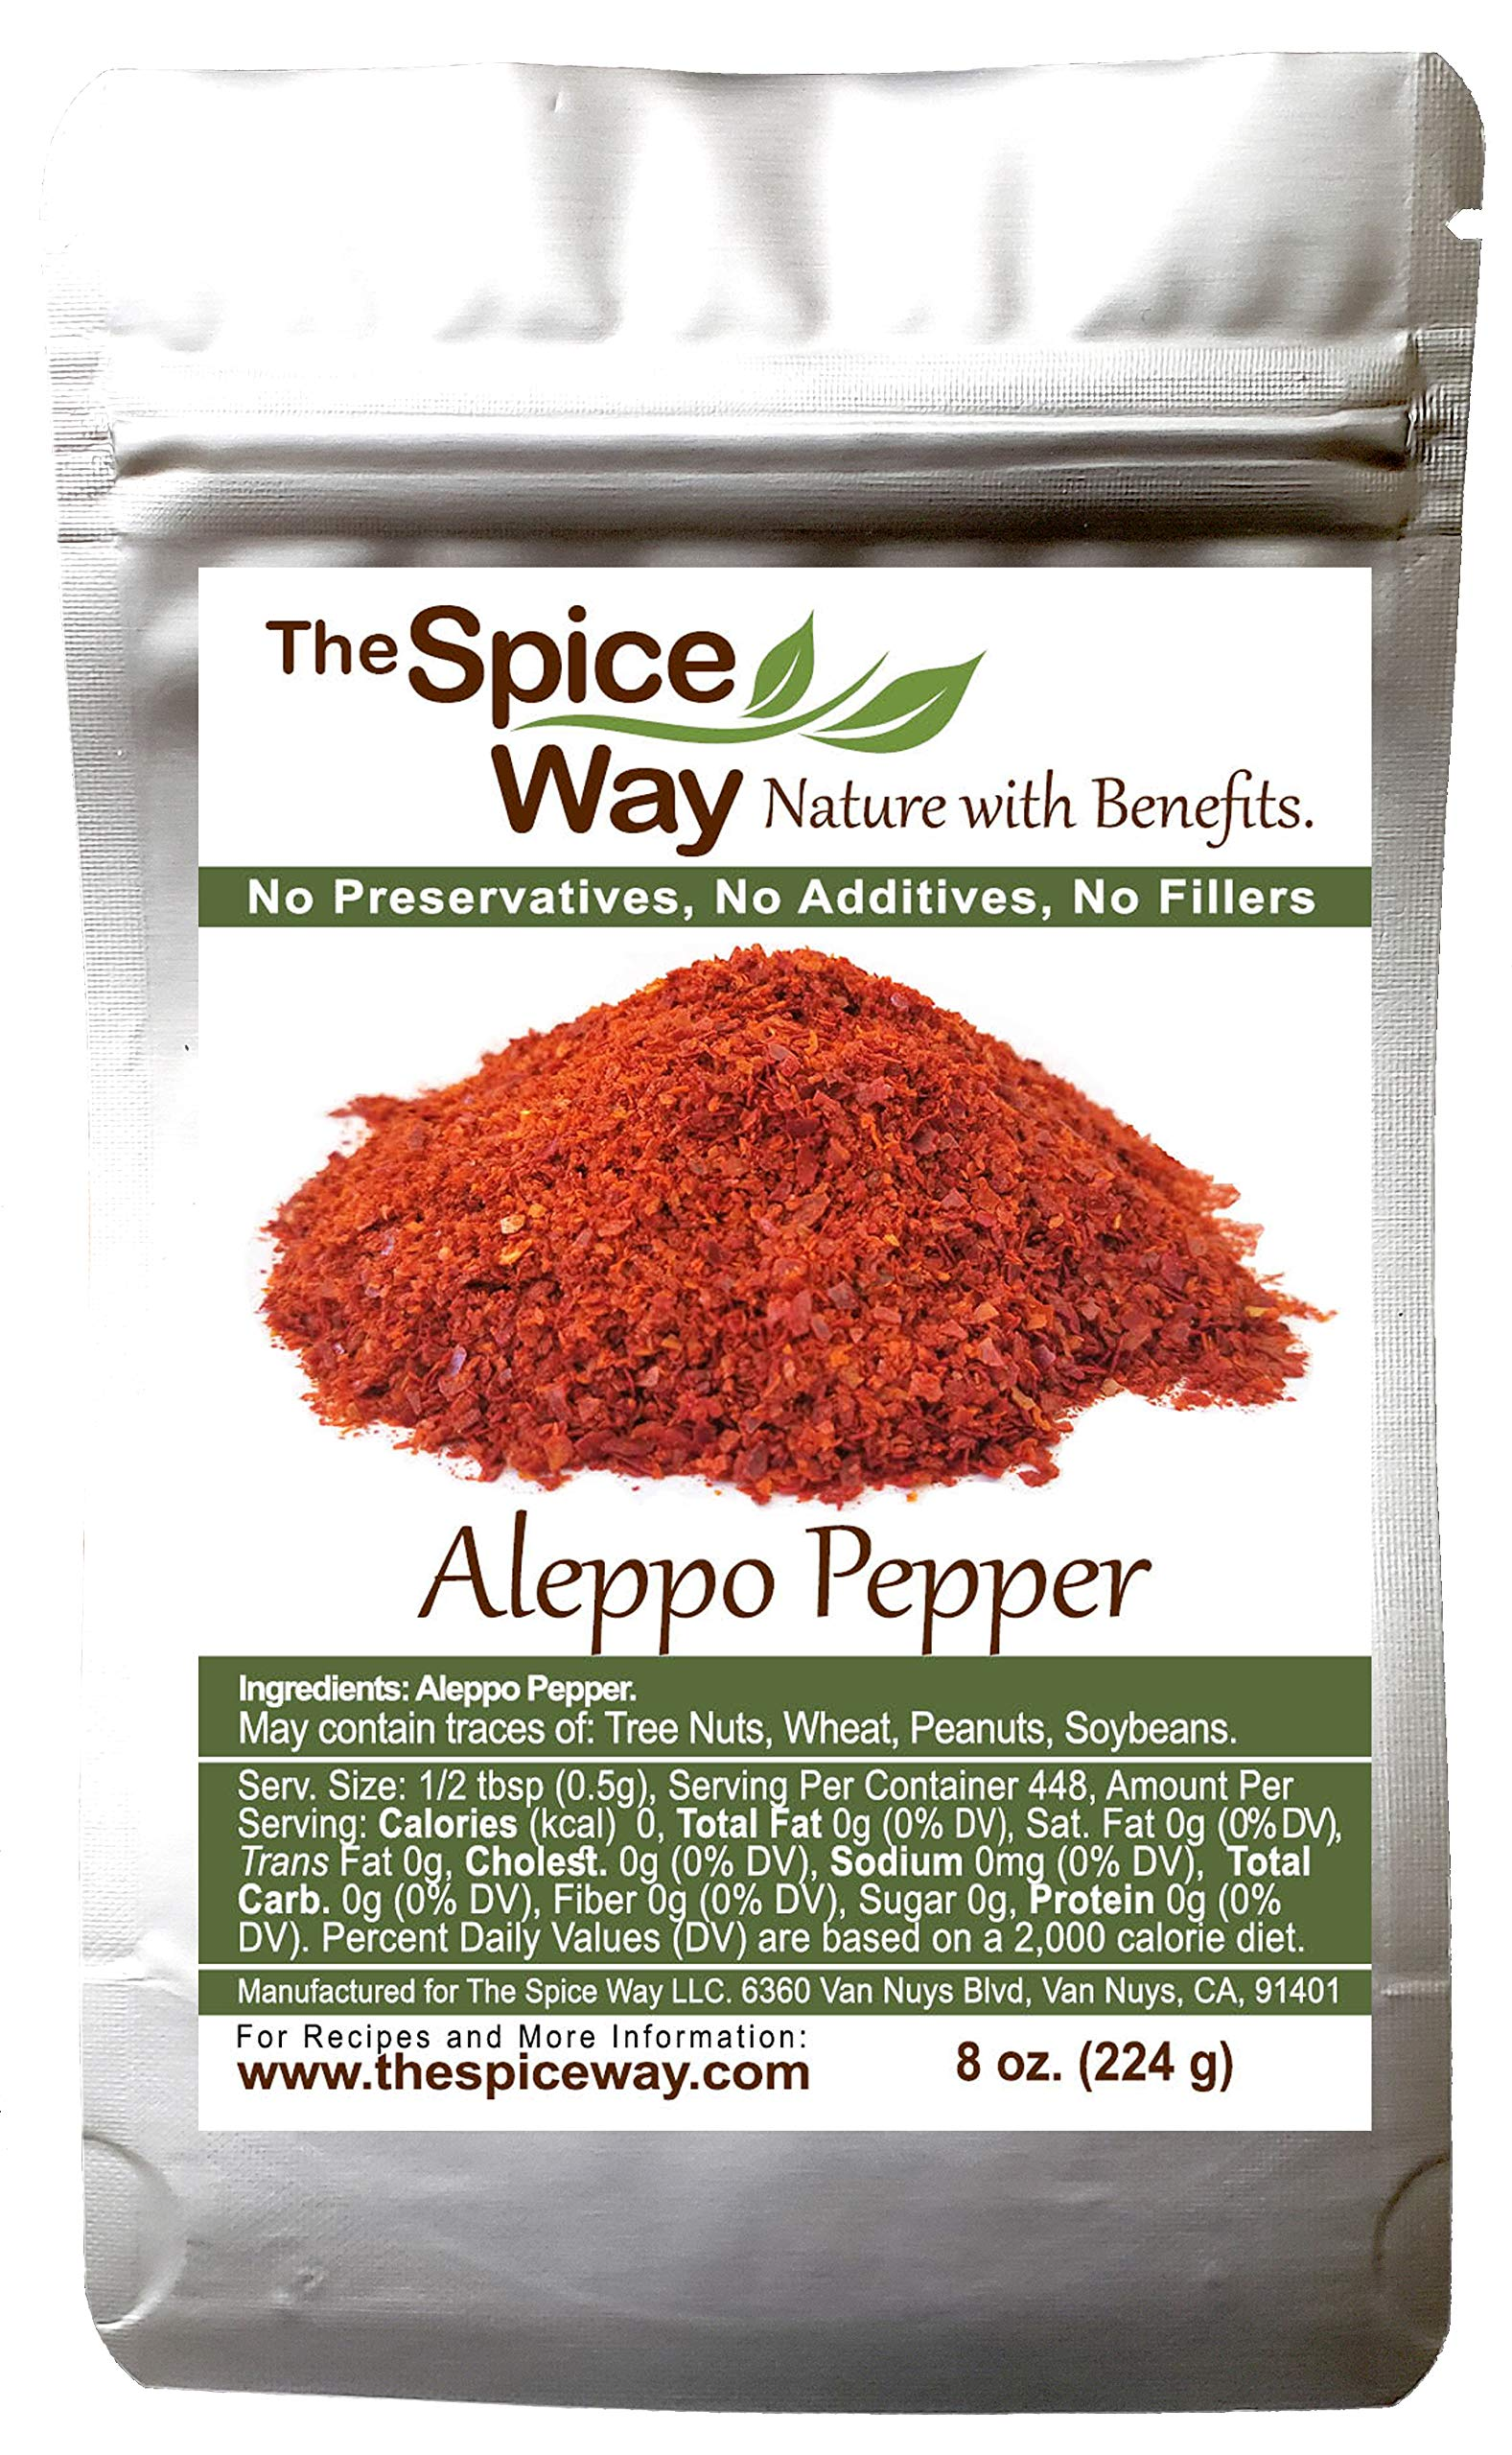 The Spice Way - Premium Aleppo Pepper ( 8 oz.) Crushed Aleppo Pepper Flakes (Halaby Pepper/Pul Biber/Marash Pepper/Aleppo Chili Flakes) Popular in Turkish and Middle Eastern/Mediterranean cooking